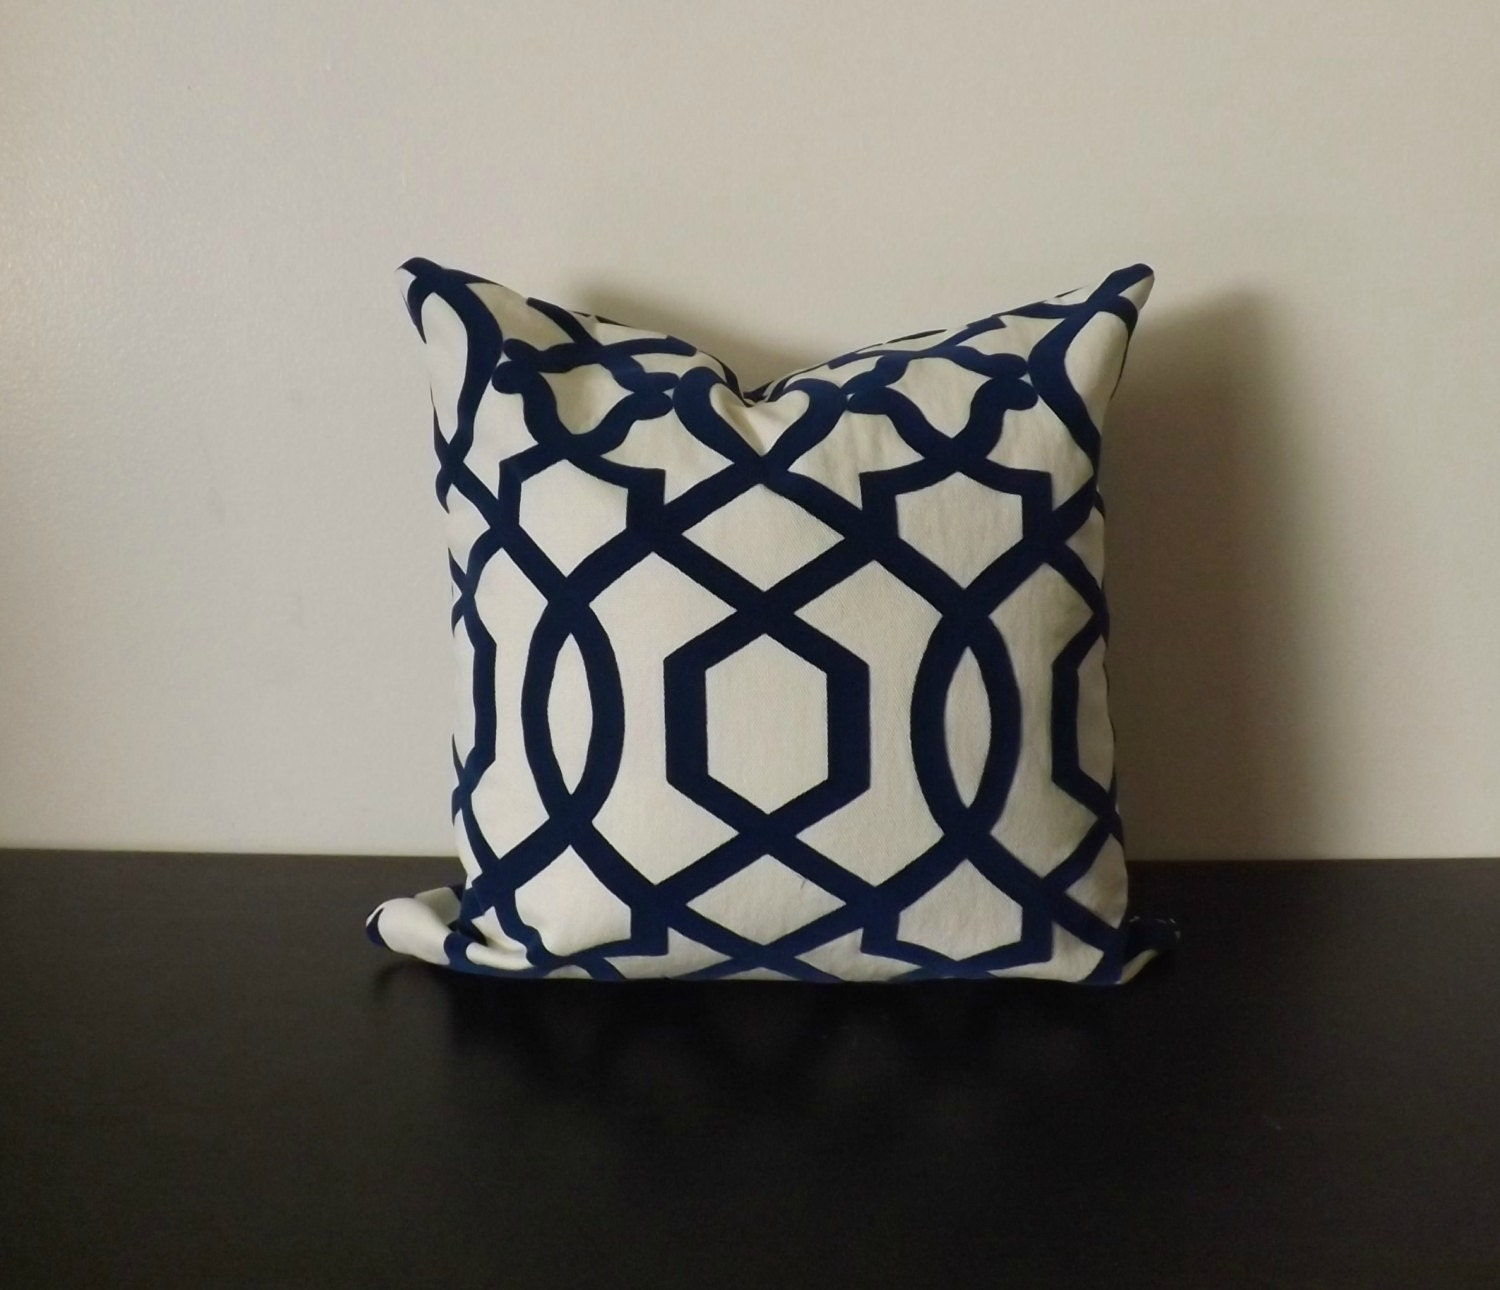 Iman Luna Decorative Pillow Cover Cream and Navy Pillow